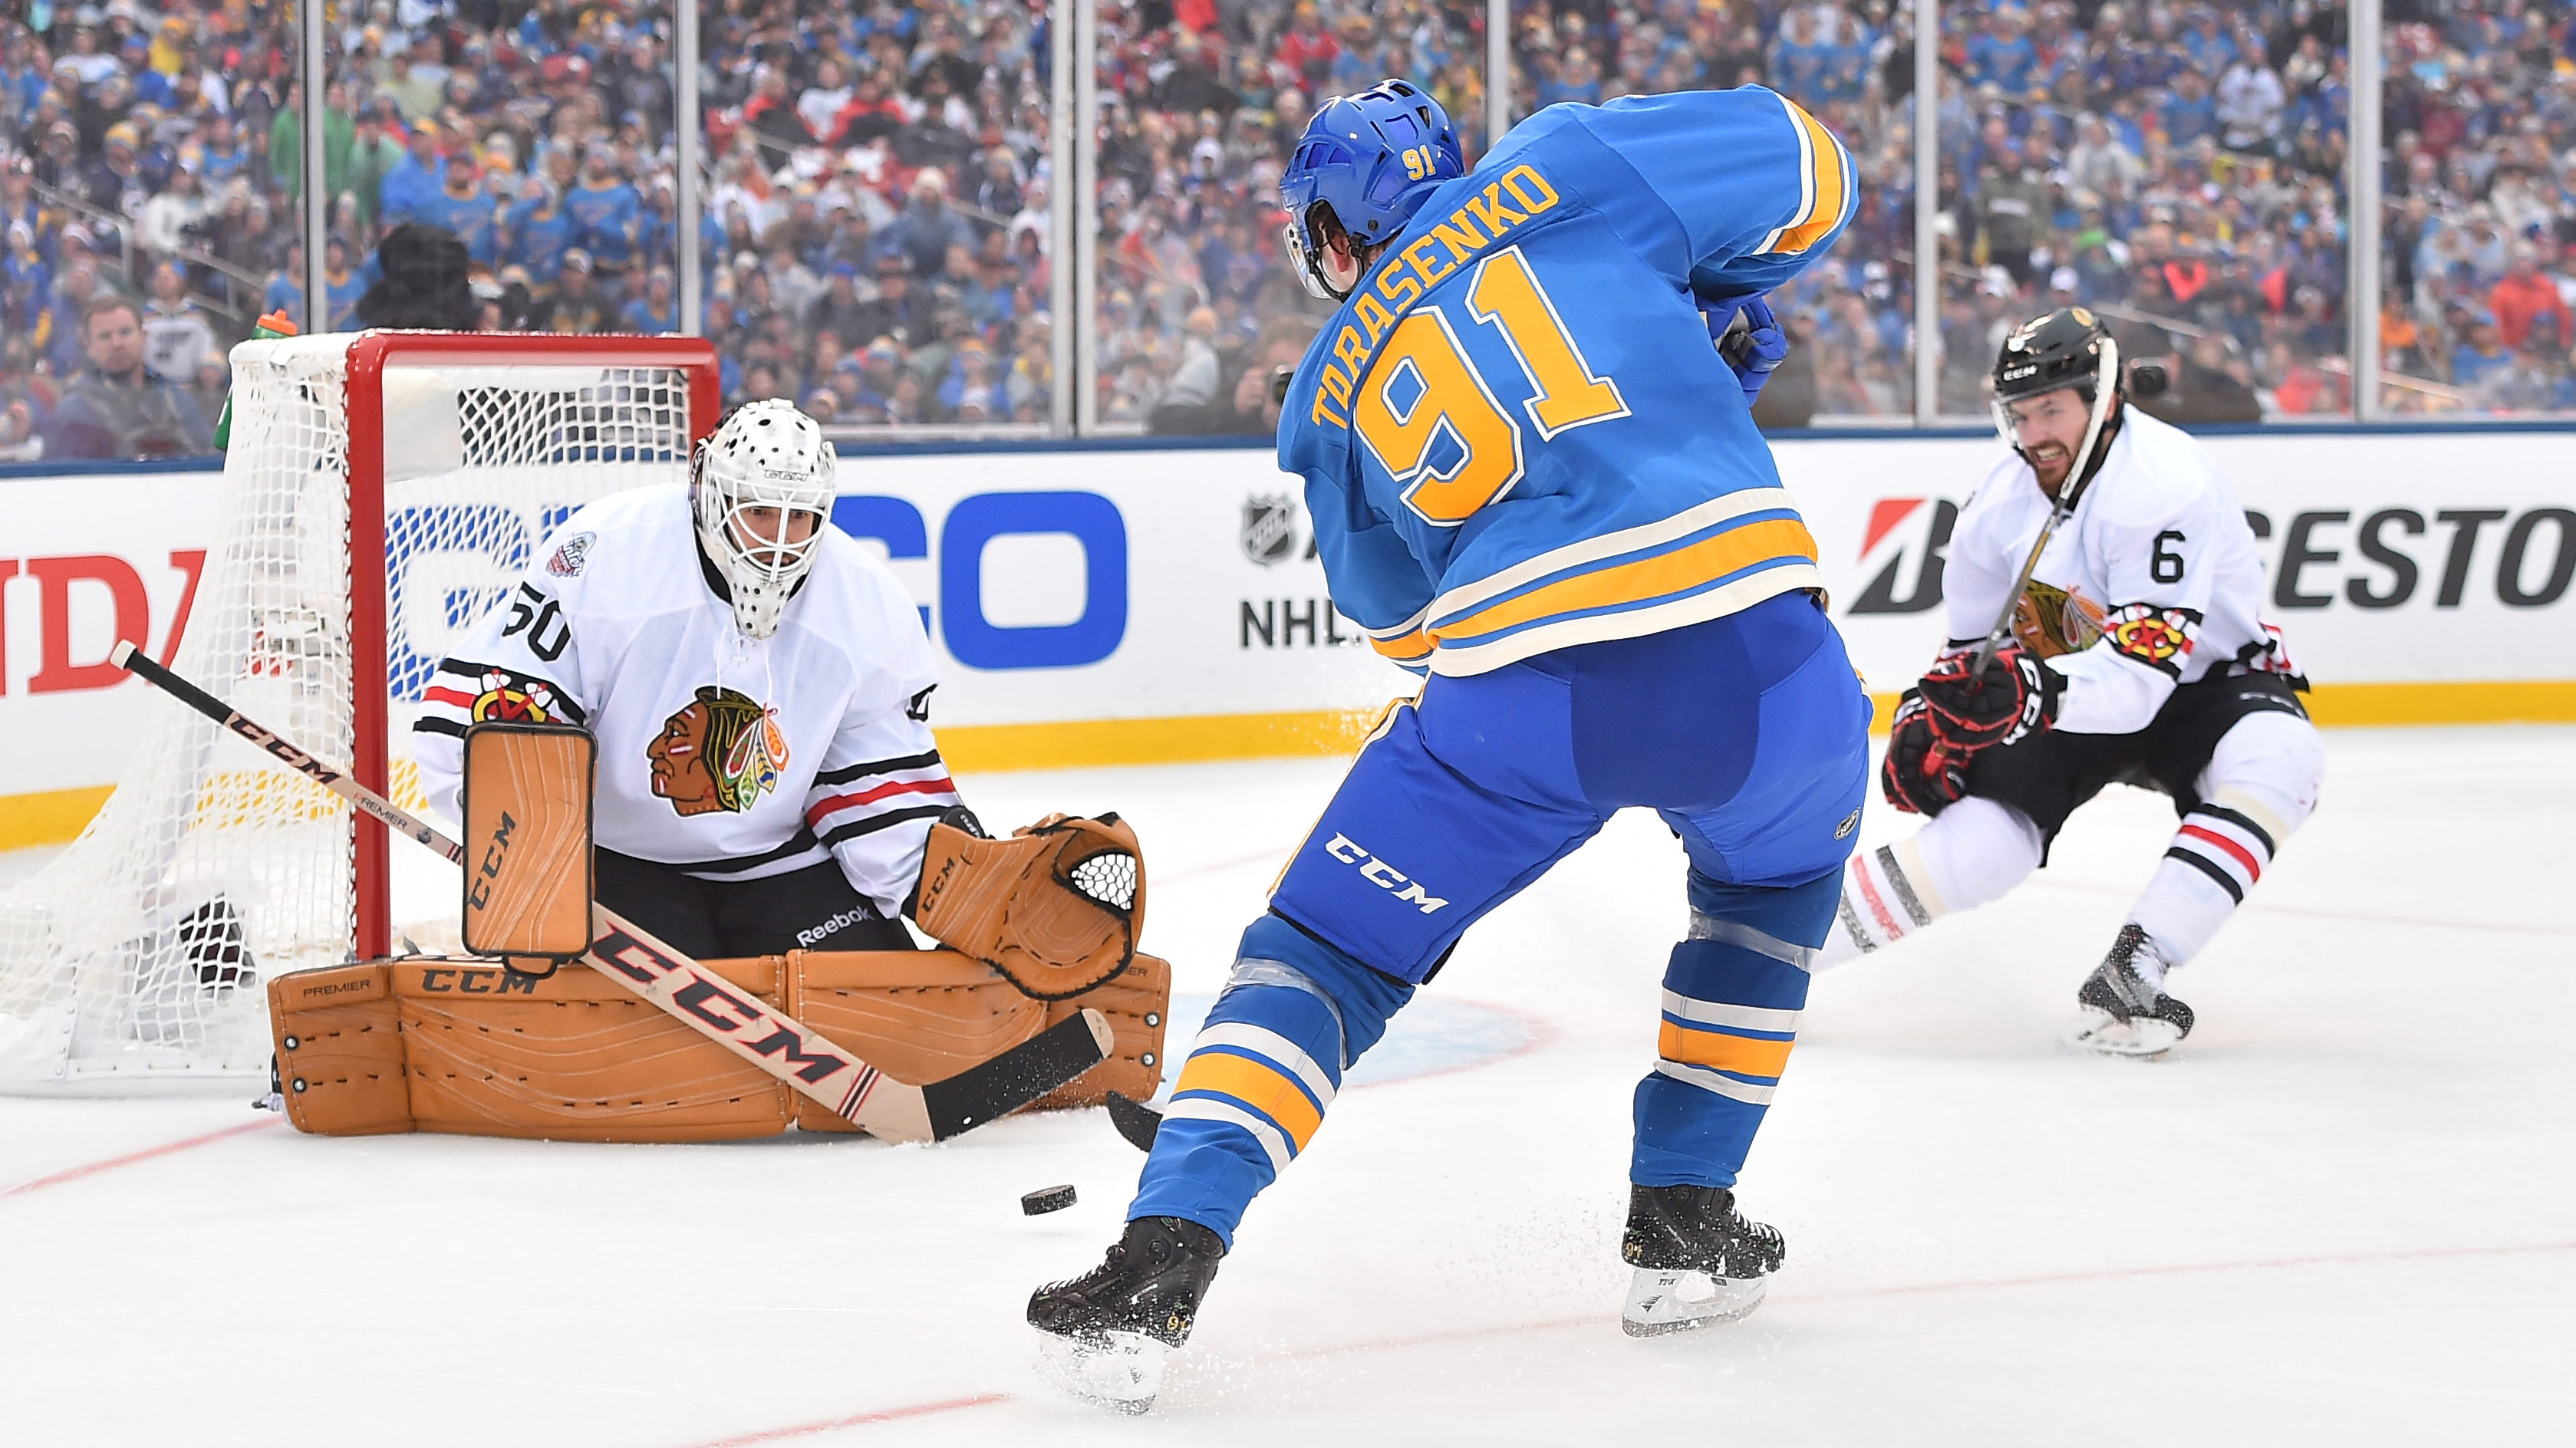 Jan 2, 2017; St. Louis, MO, USA; Chicago Blackhawks goalie Corey Crawford (50) makes a save on a shot by St. Louis Blues right wing Vladimir Tarasenko (91) during the second period in the 2016 Winter Classic ice hockey game at Busch Stadium. Mandatory Credit: Jasen Vinlove-USA TODAY Sports